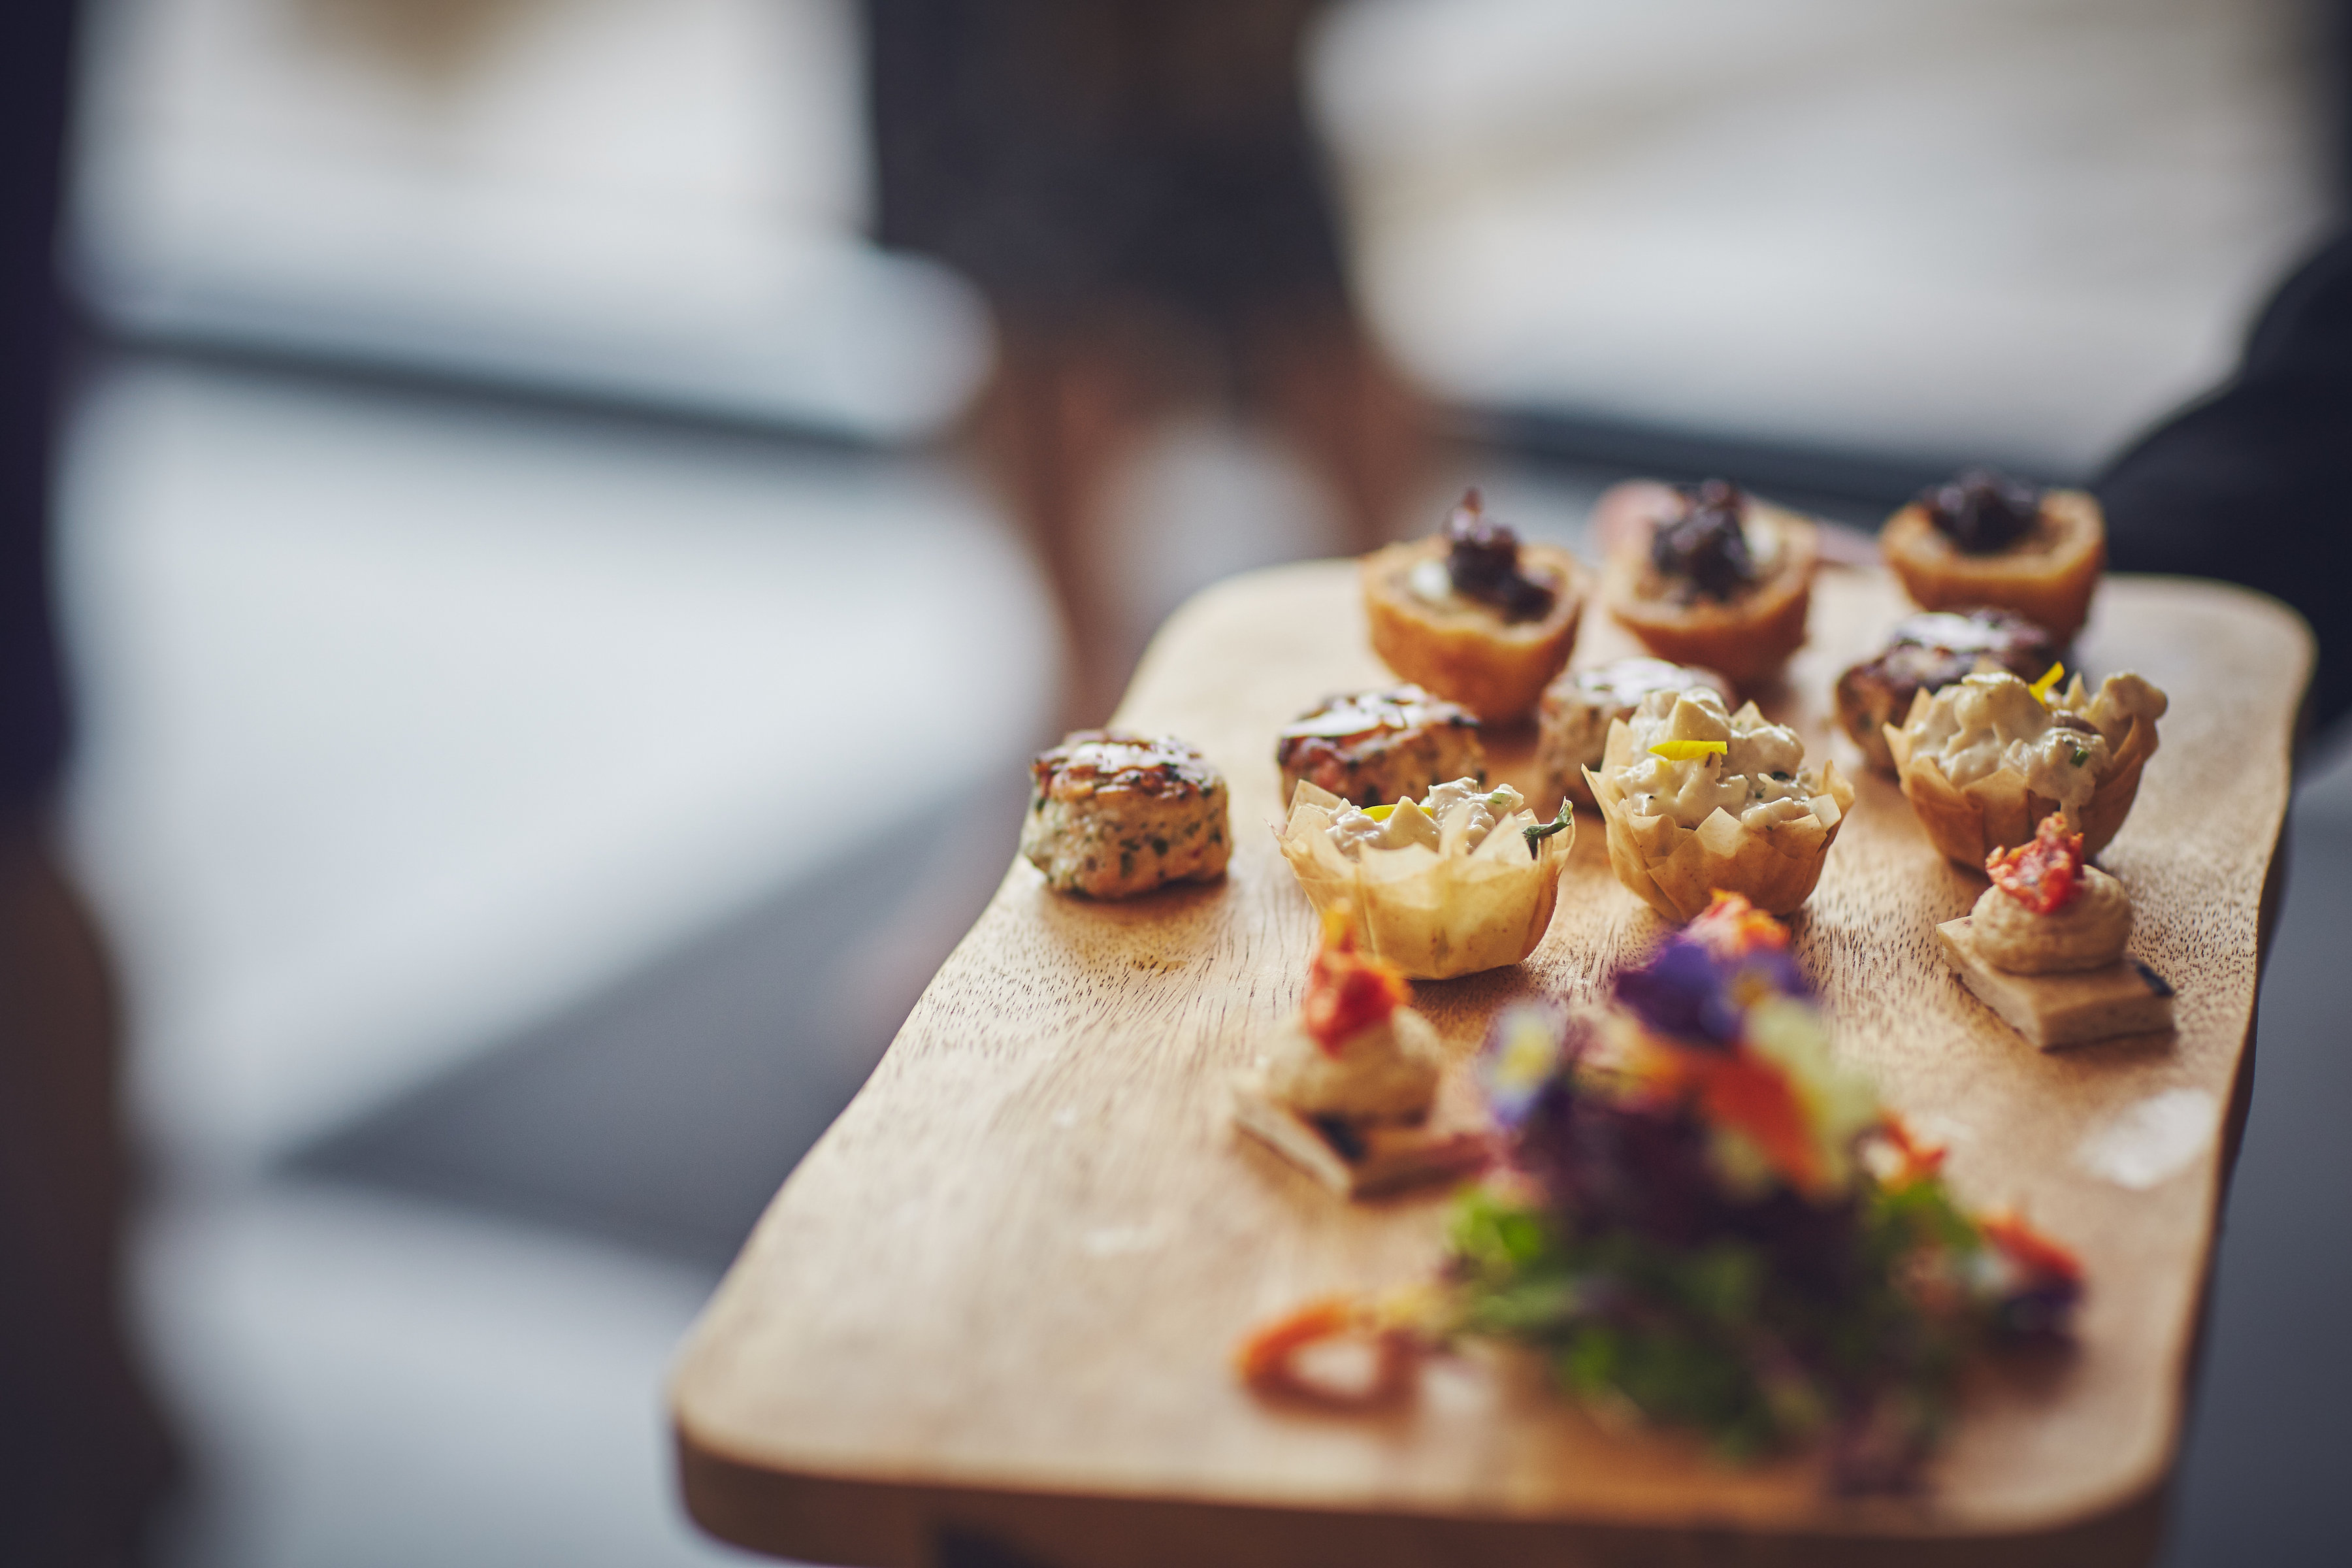 Canapes served on a wooden board